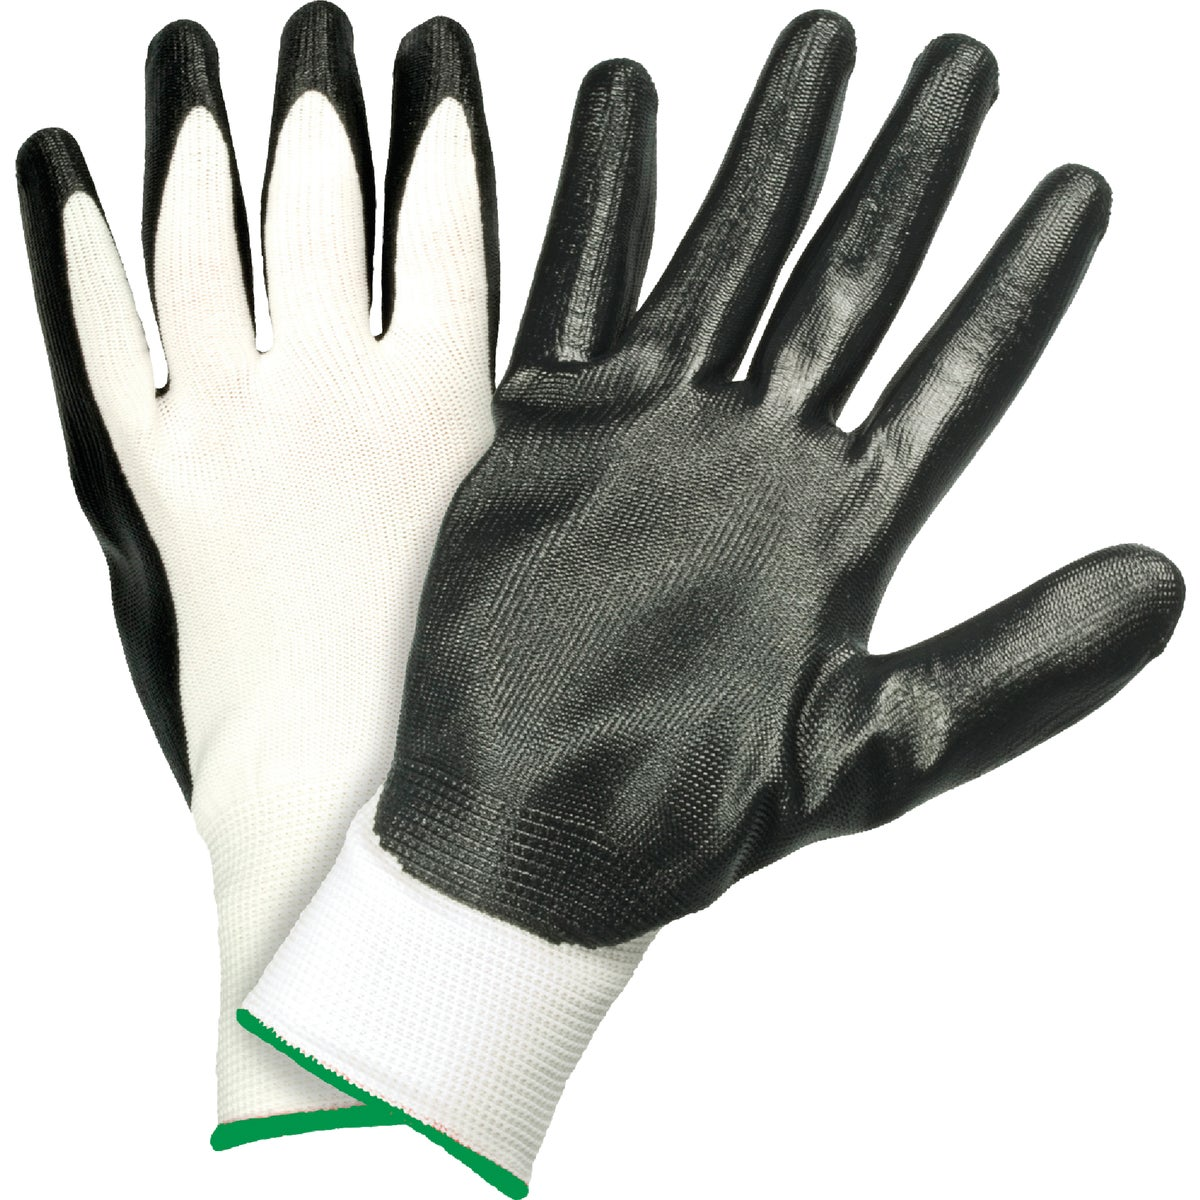 5PR NITRILE COATED GLOVE - 37125/L5P by West Chester Incom